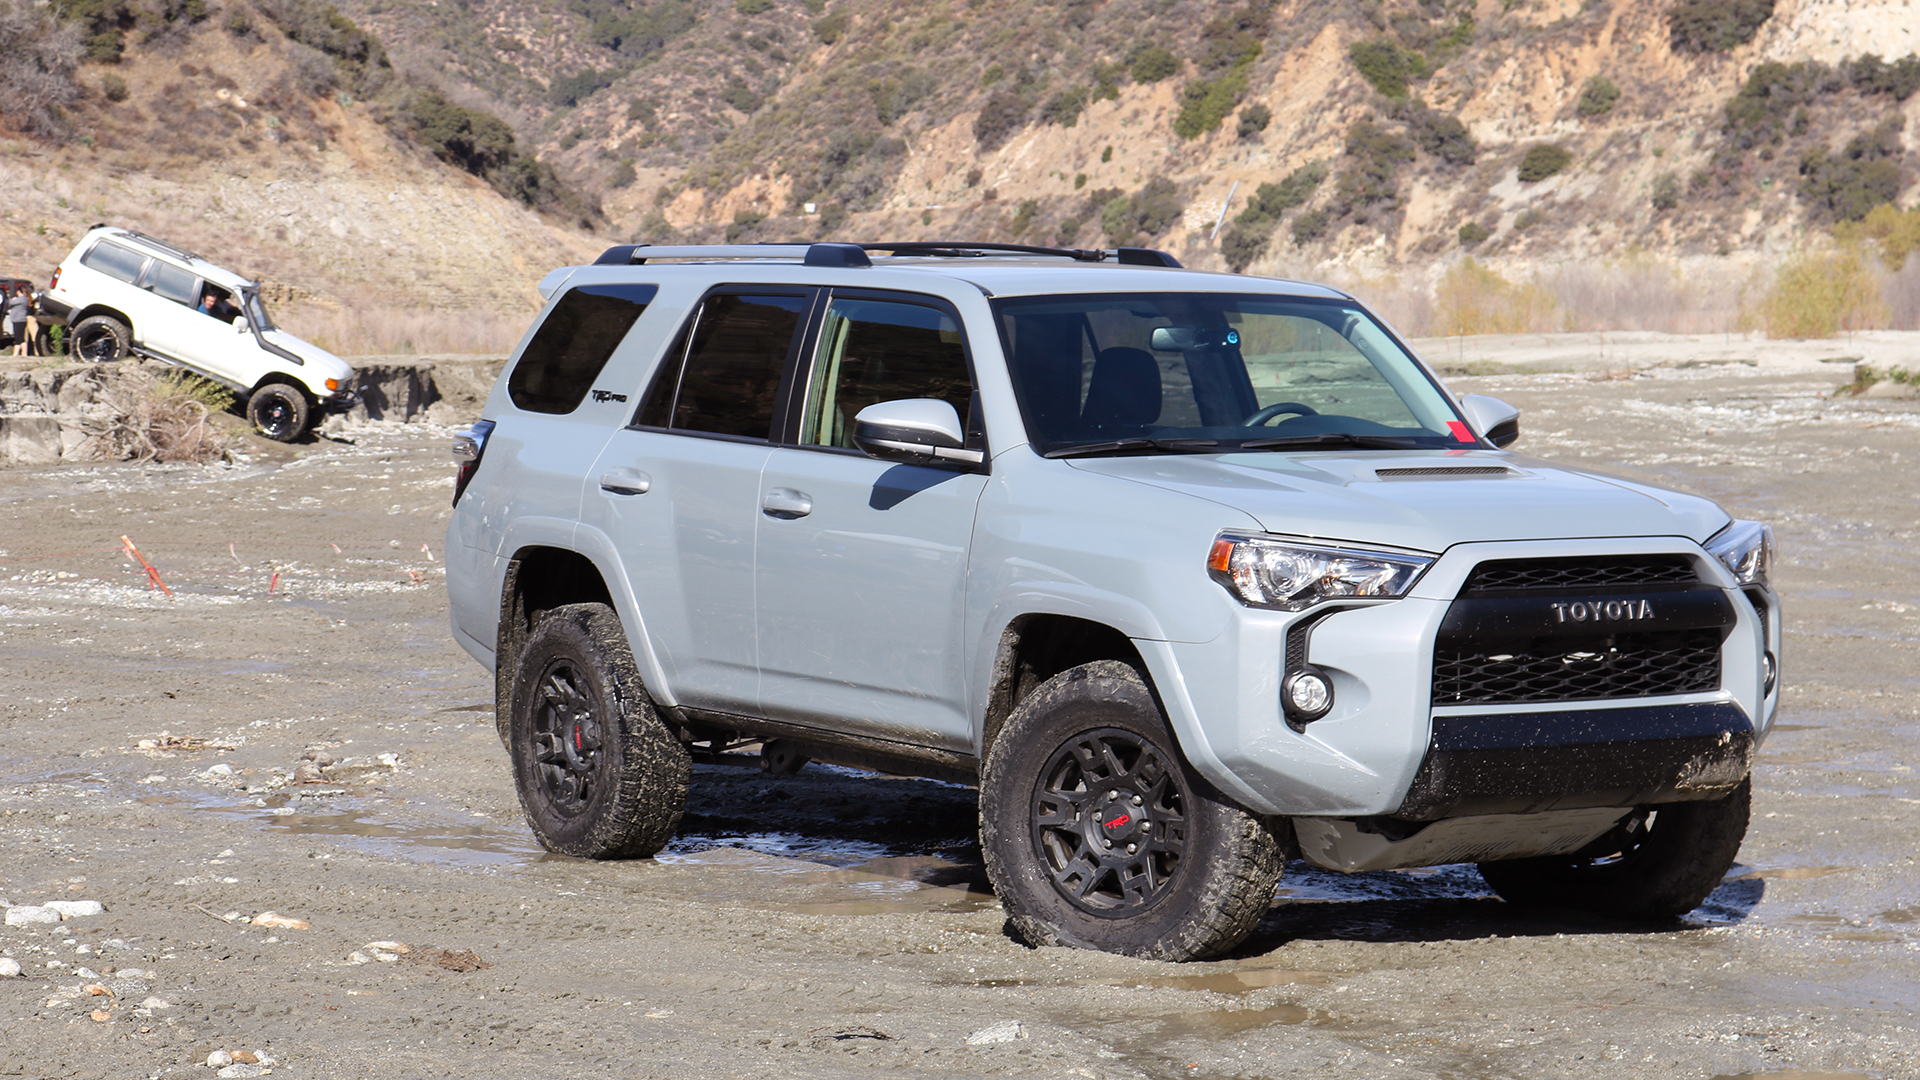 2017 toyota 4runner trd pro review old school off road goodness done right vehicle traveller. Black Bedroom Furniture Sets. Home Design Ideas